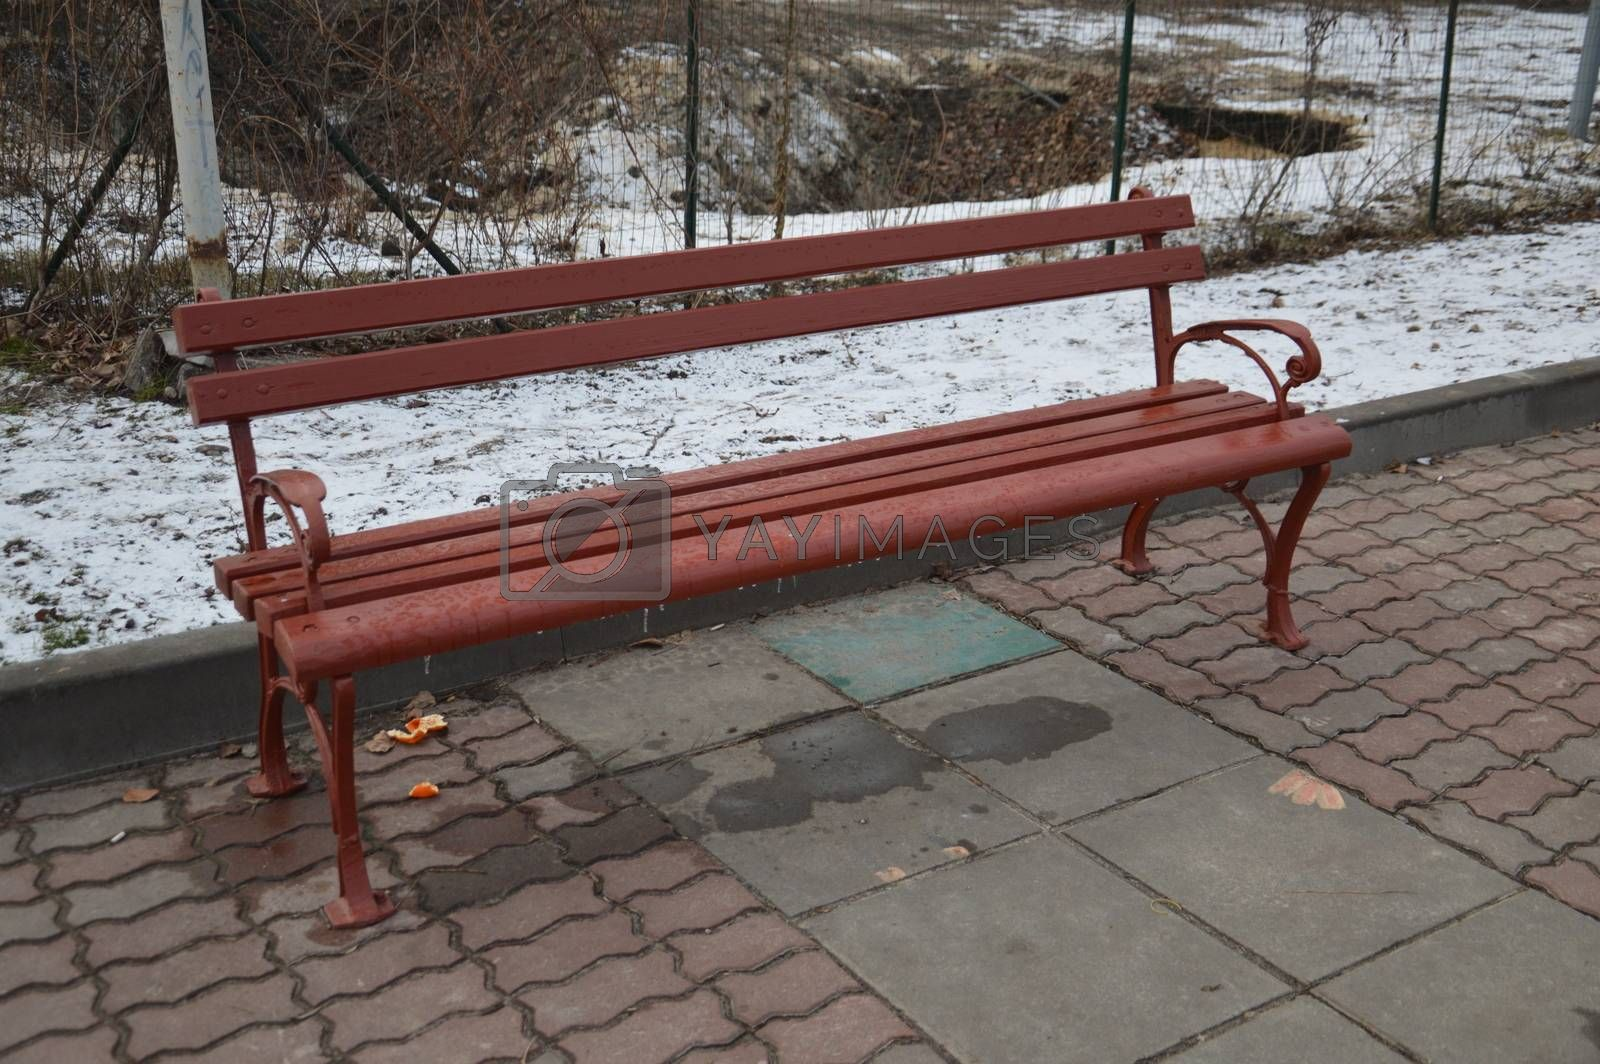 Benches in a winter park made of the wood